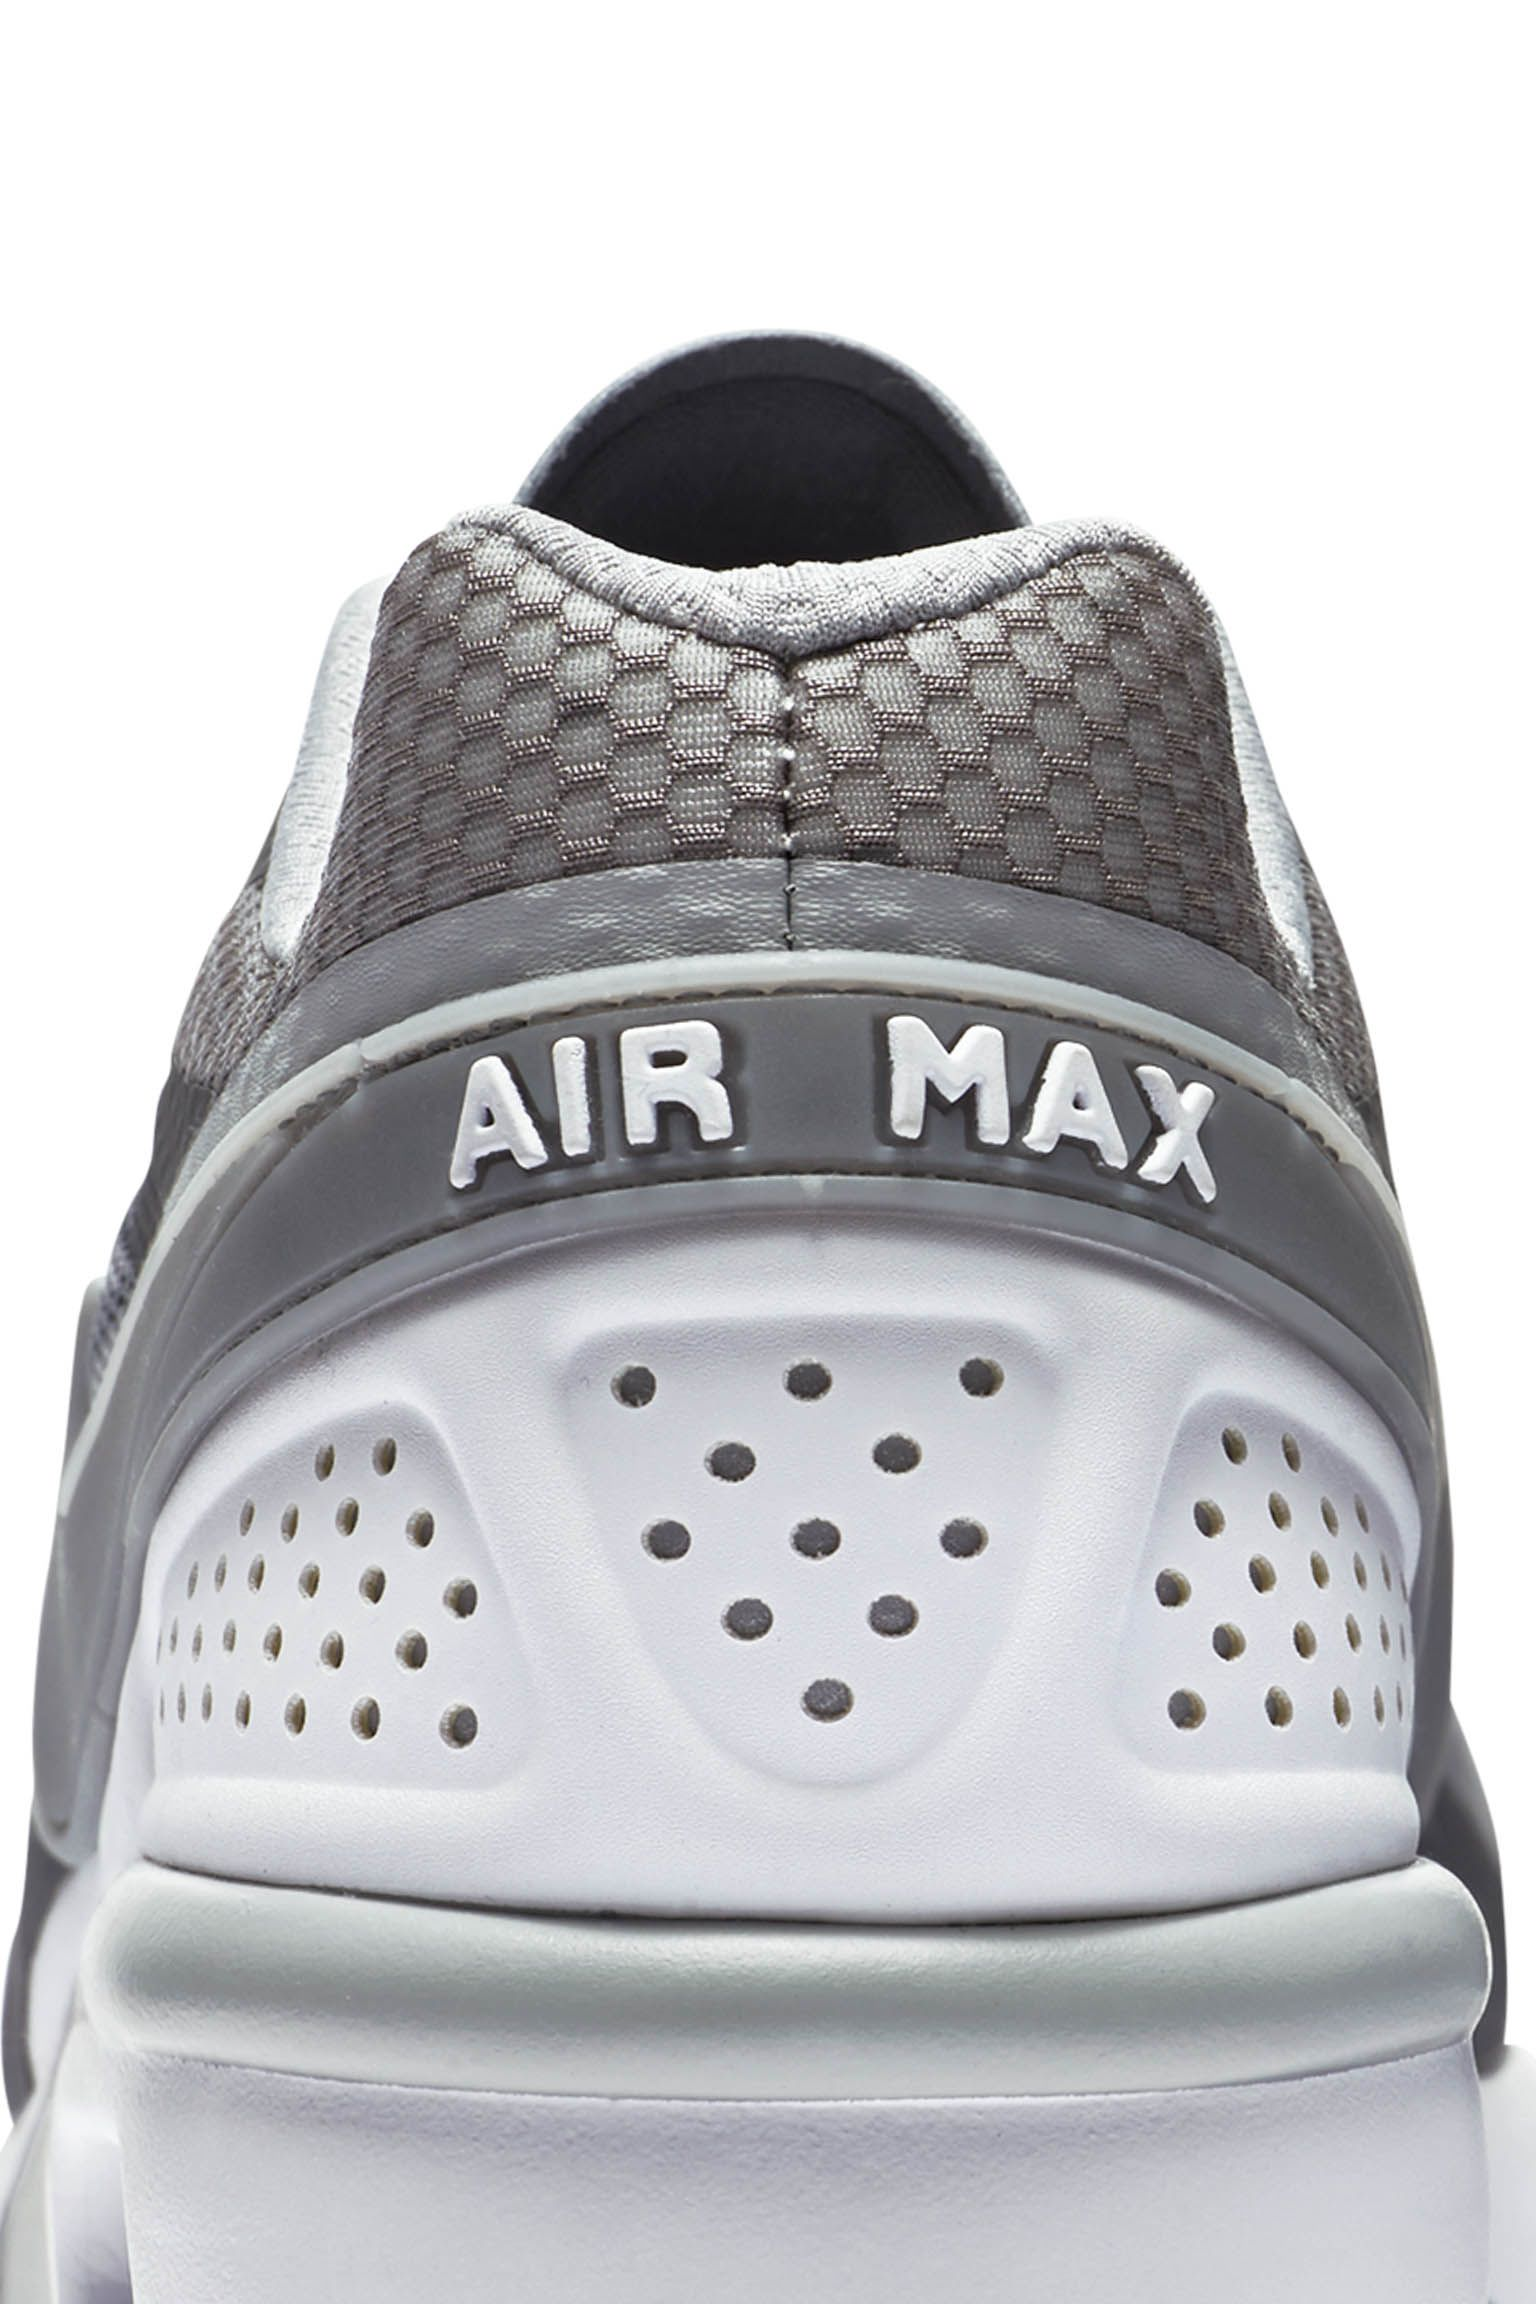 6913aca38b best price nike air max bw ultra grey white 7e70c 6b01d